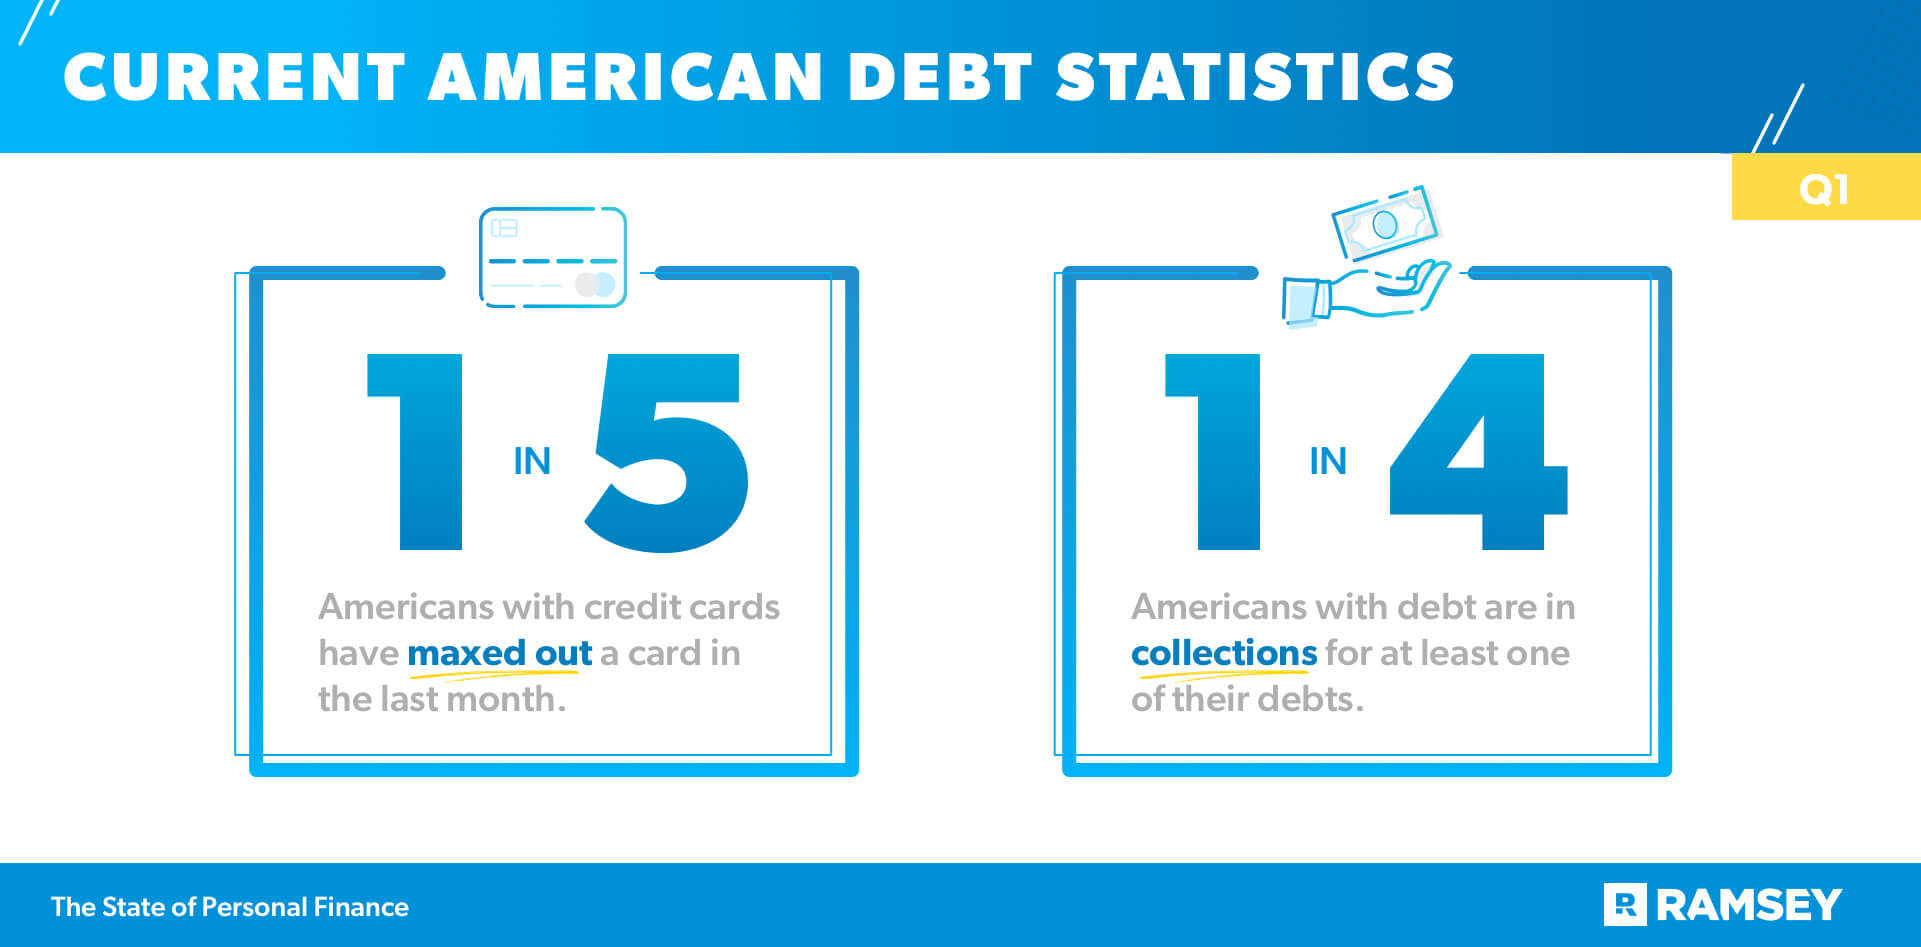 One in Five Americans have Maxed Out a Credit Card and One in Four are in Collections for at Lease One of their Debts